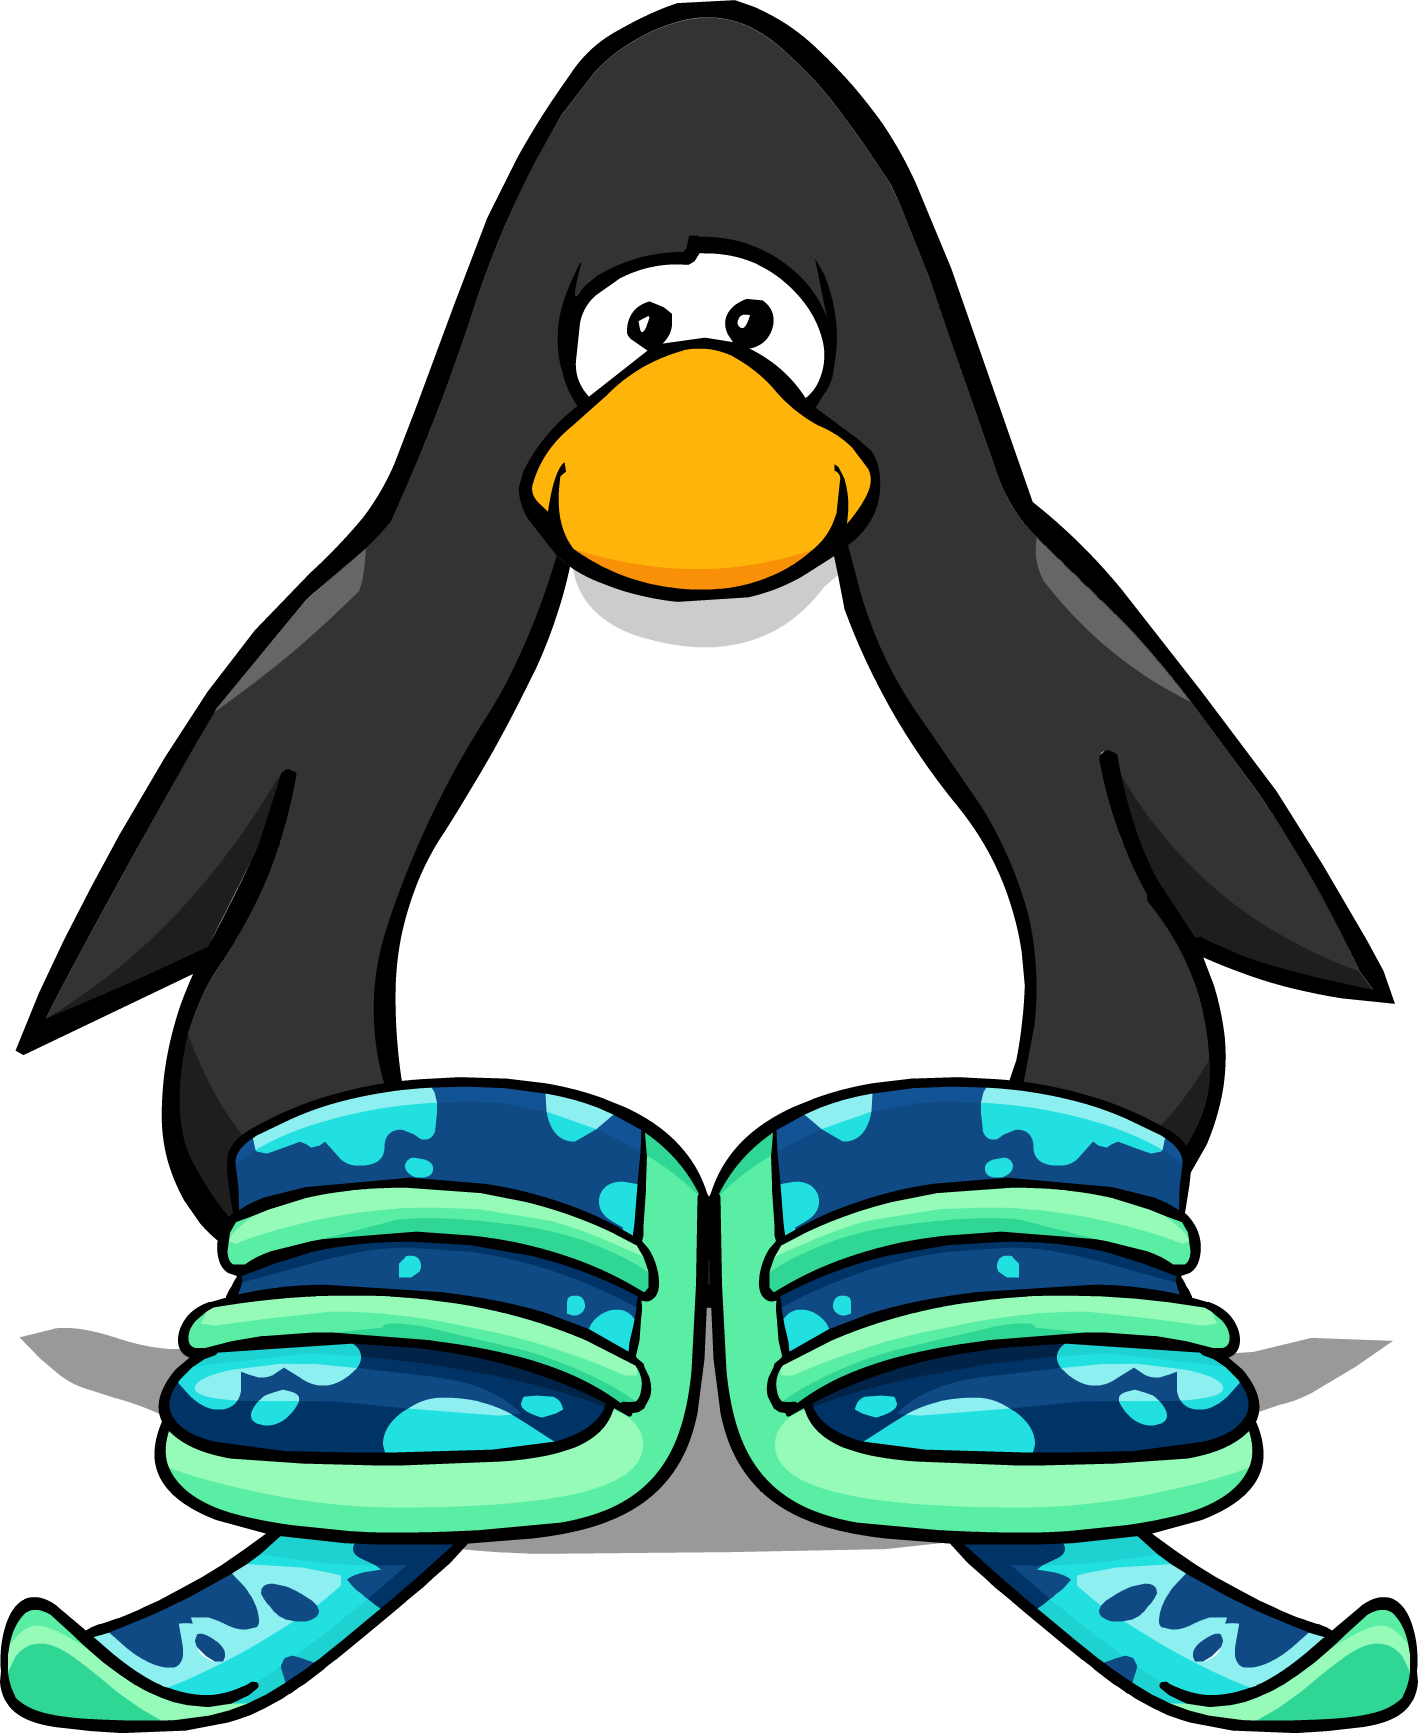 Penguins clipart skiing. Image cool ski boots